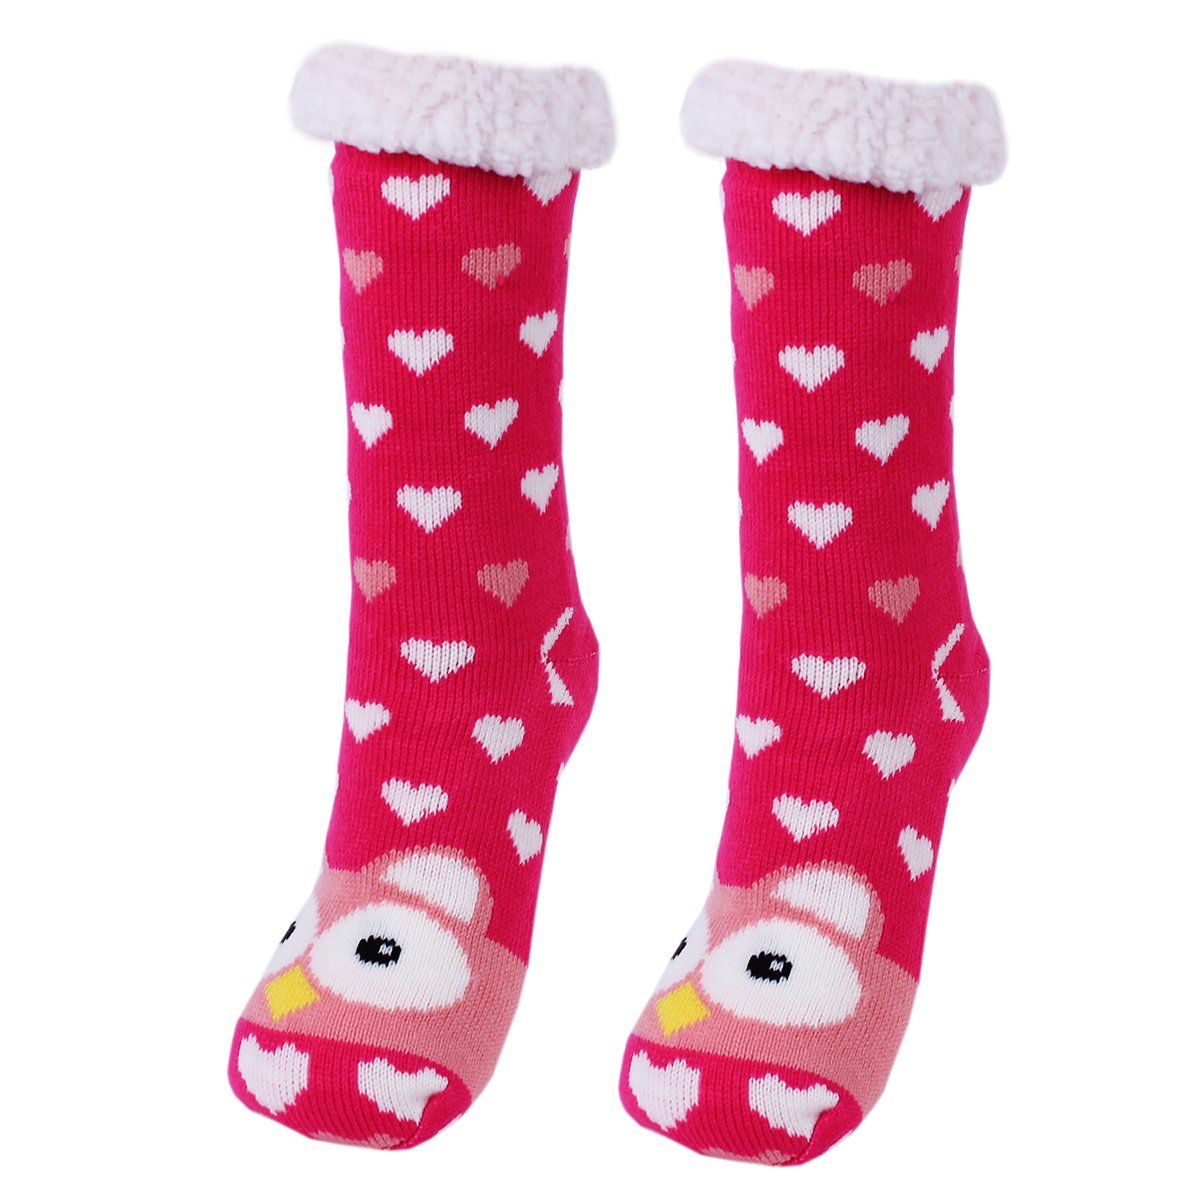 Amkun Womens Super Soft Cute Knit Cartoon Animal fuzzy Cozy Non-Slip Winter Slipper Socks